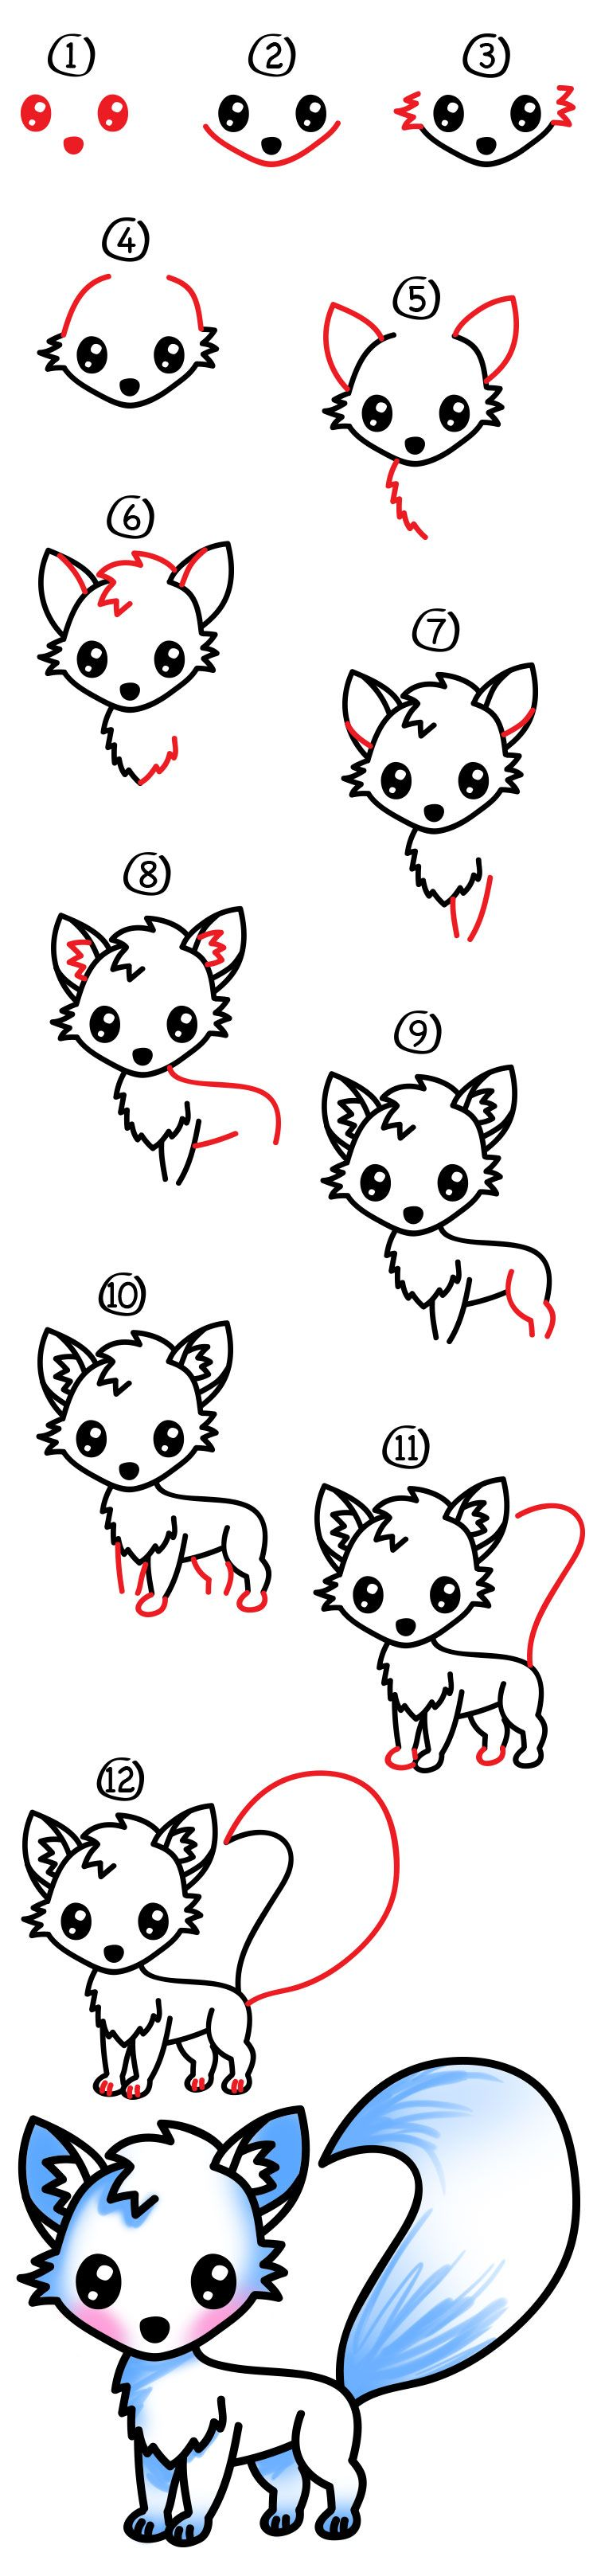 How to draw an arctic fox | Step by step Drawing tutorials